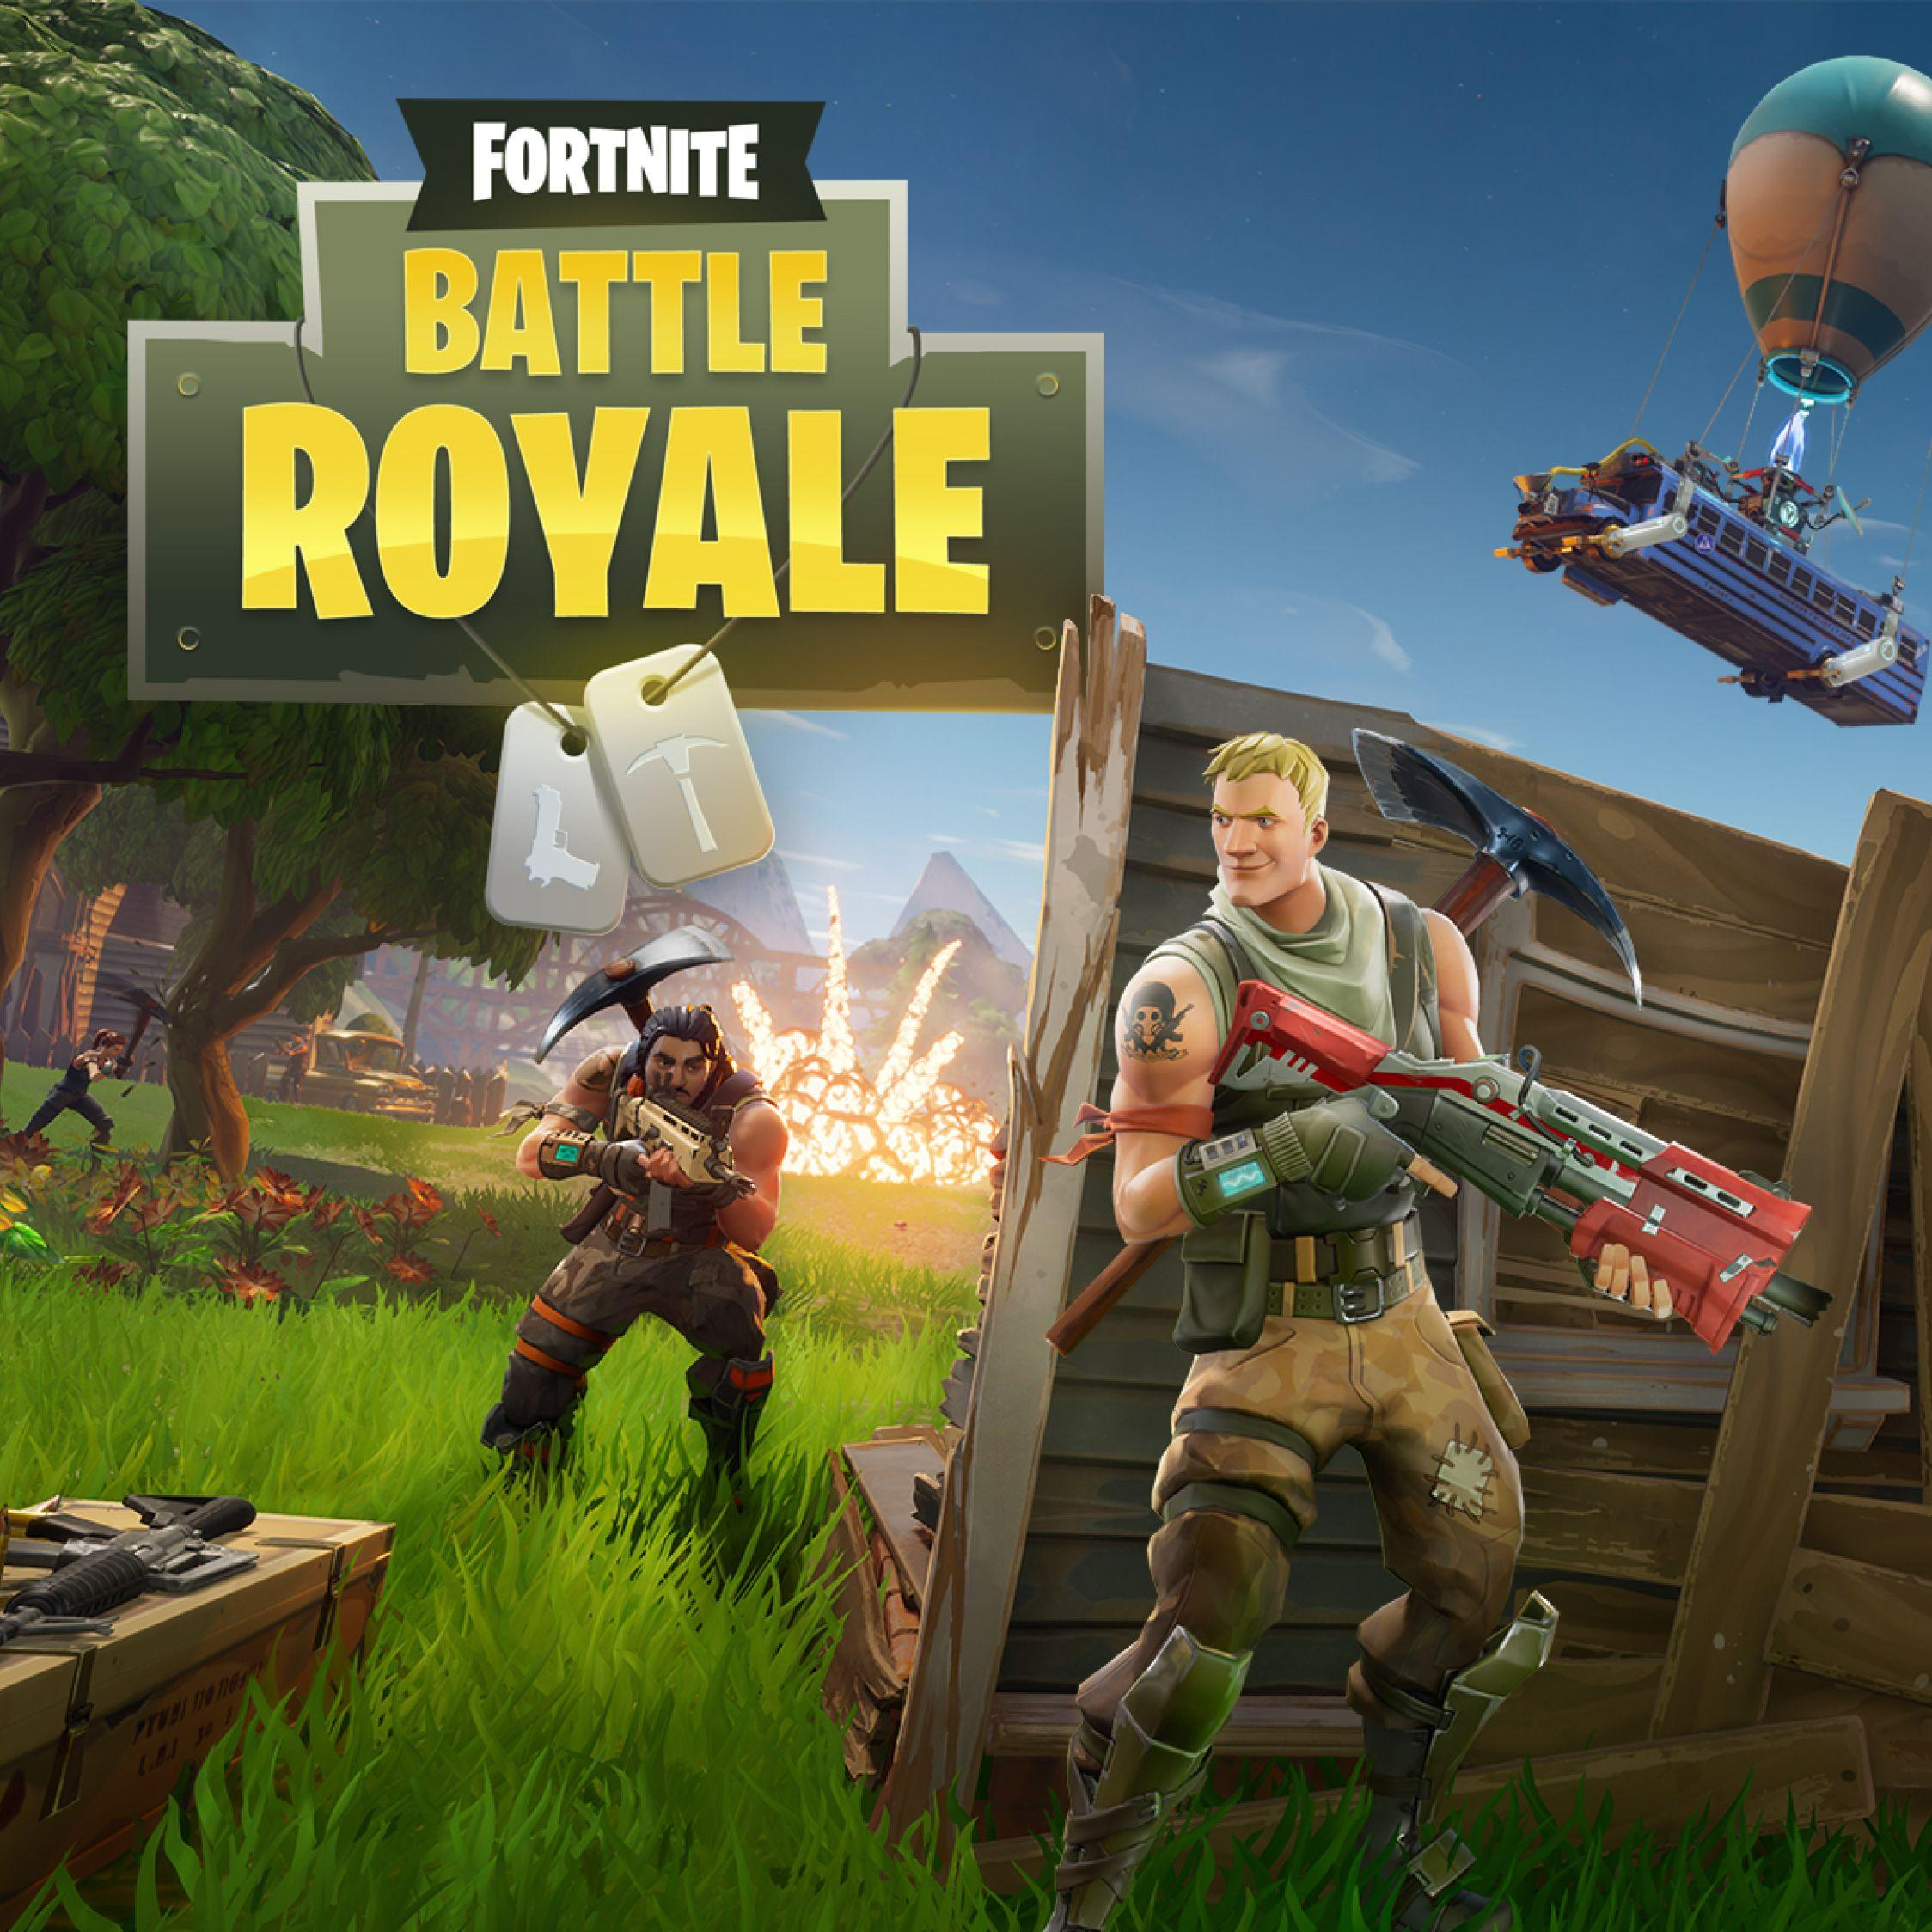 Download Fortnite Battle Royale 2048x1152 Resolution, Full HD Wallpapers